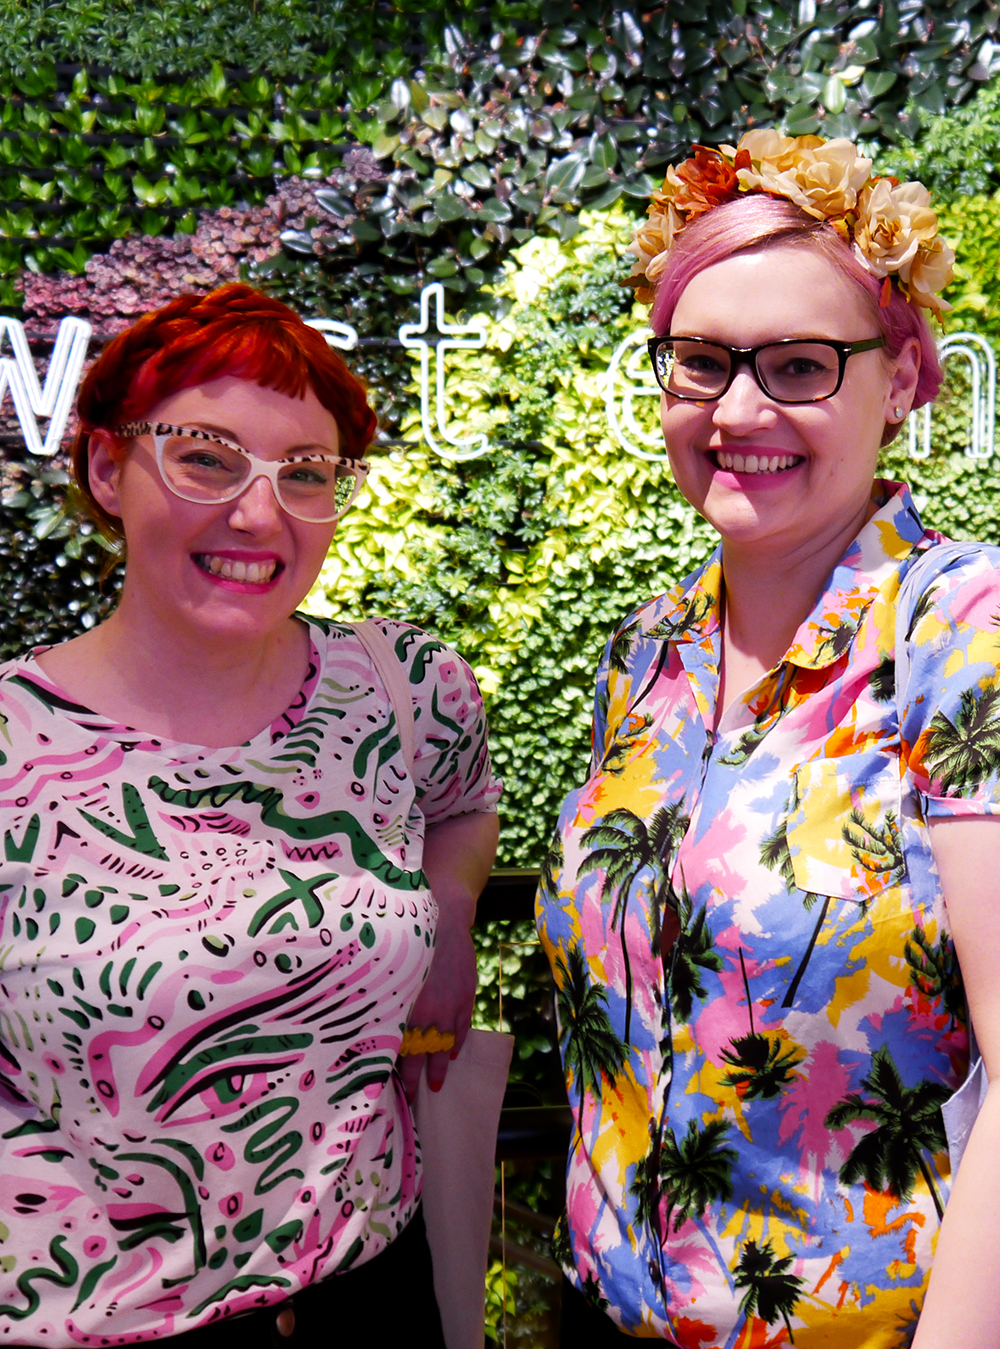 blog, blogger, Scottish blogger, blogging duo, ginger, pink hair, girls with glasses,interior design, pintacular, festival style, Hawaiian print